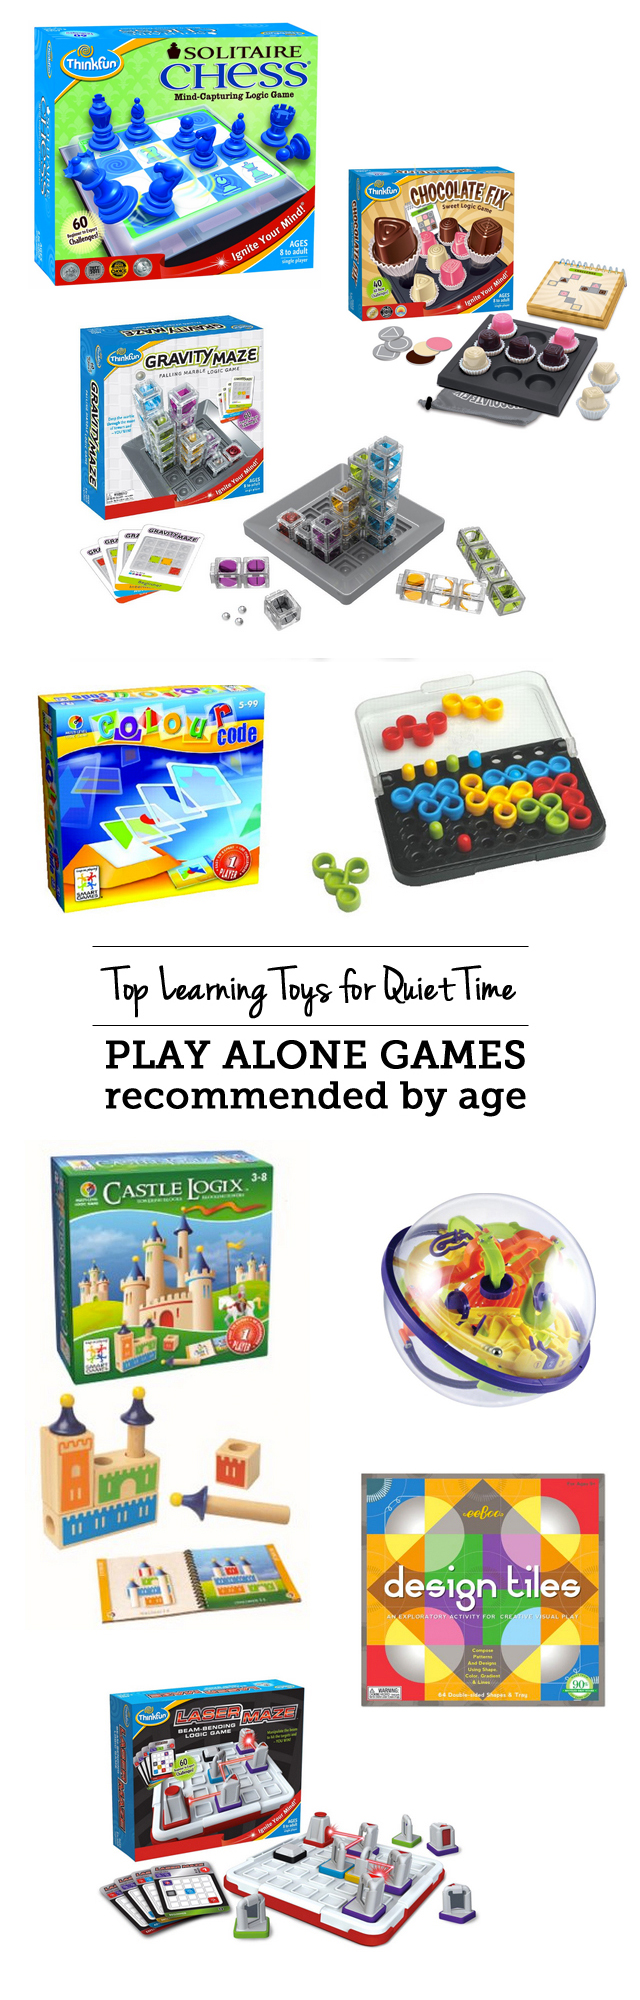 Best Learning Toys For Toddlers And Kids : Mpmk gift guide top learning toys for quiet time